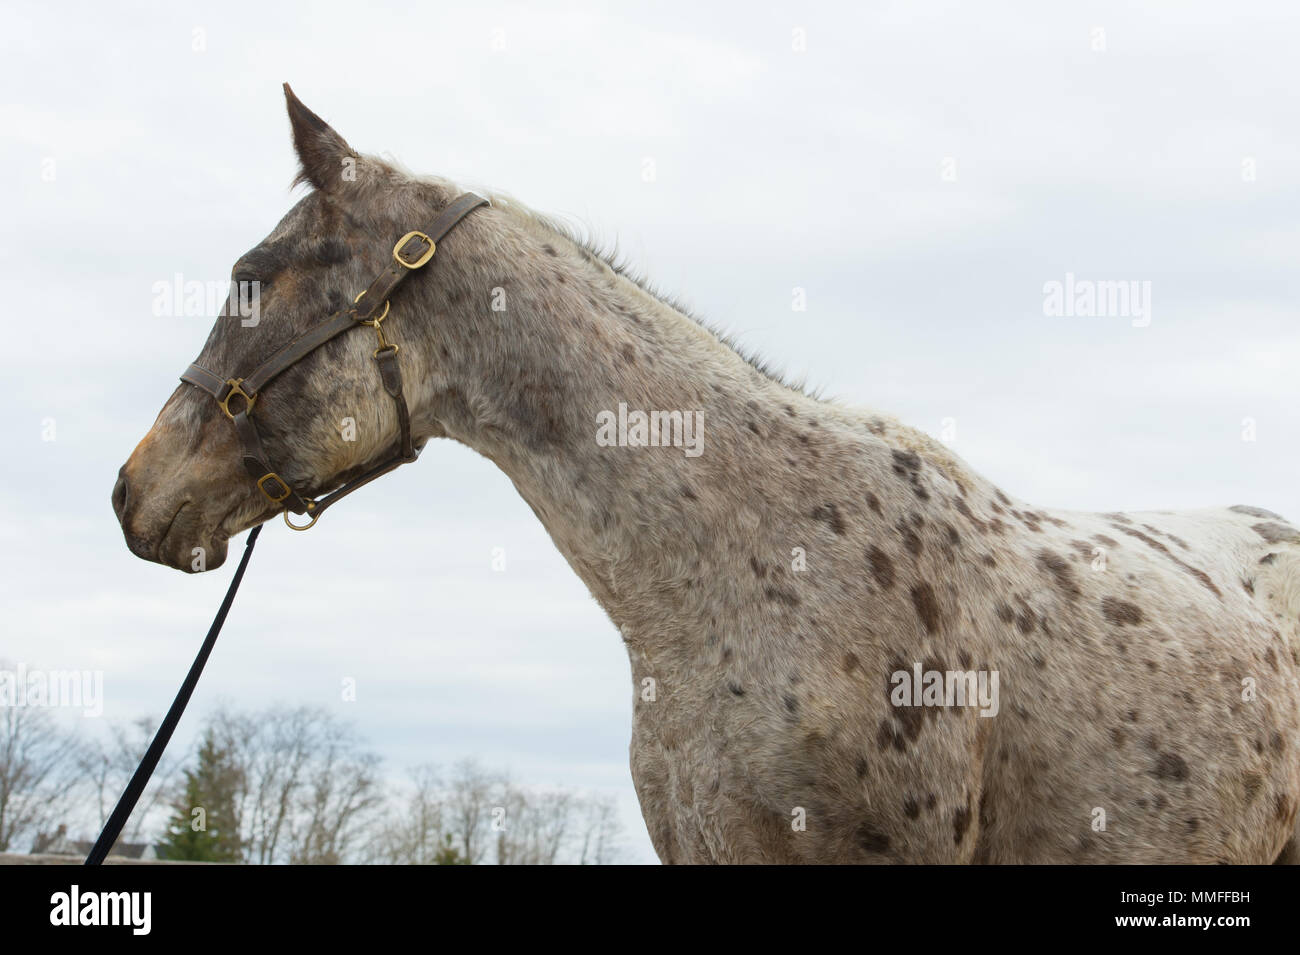 Head and shoulders of spotted appaloosa gelding - Stock Image